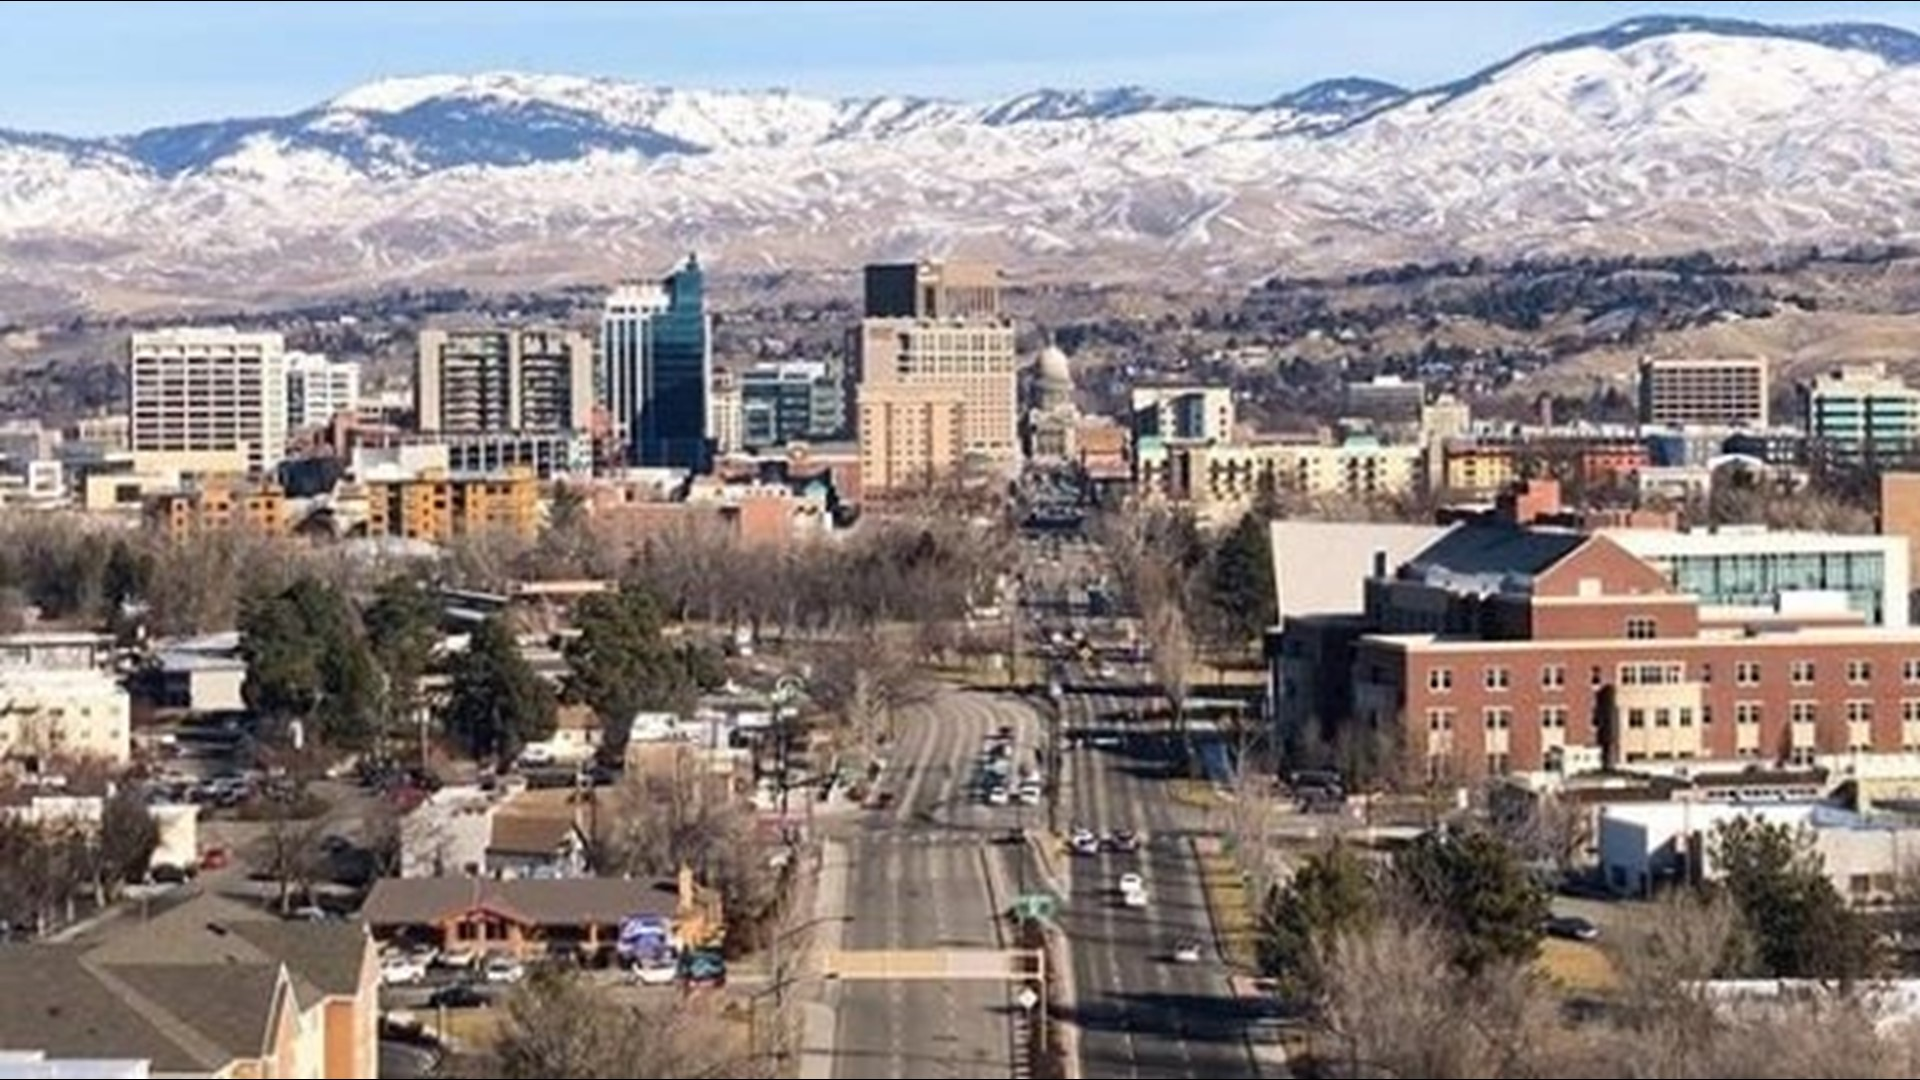 This Winter Will End As One Of The Warmest On Record For Boise